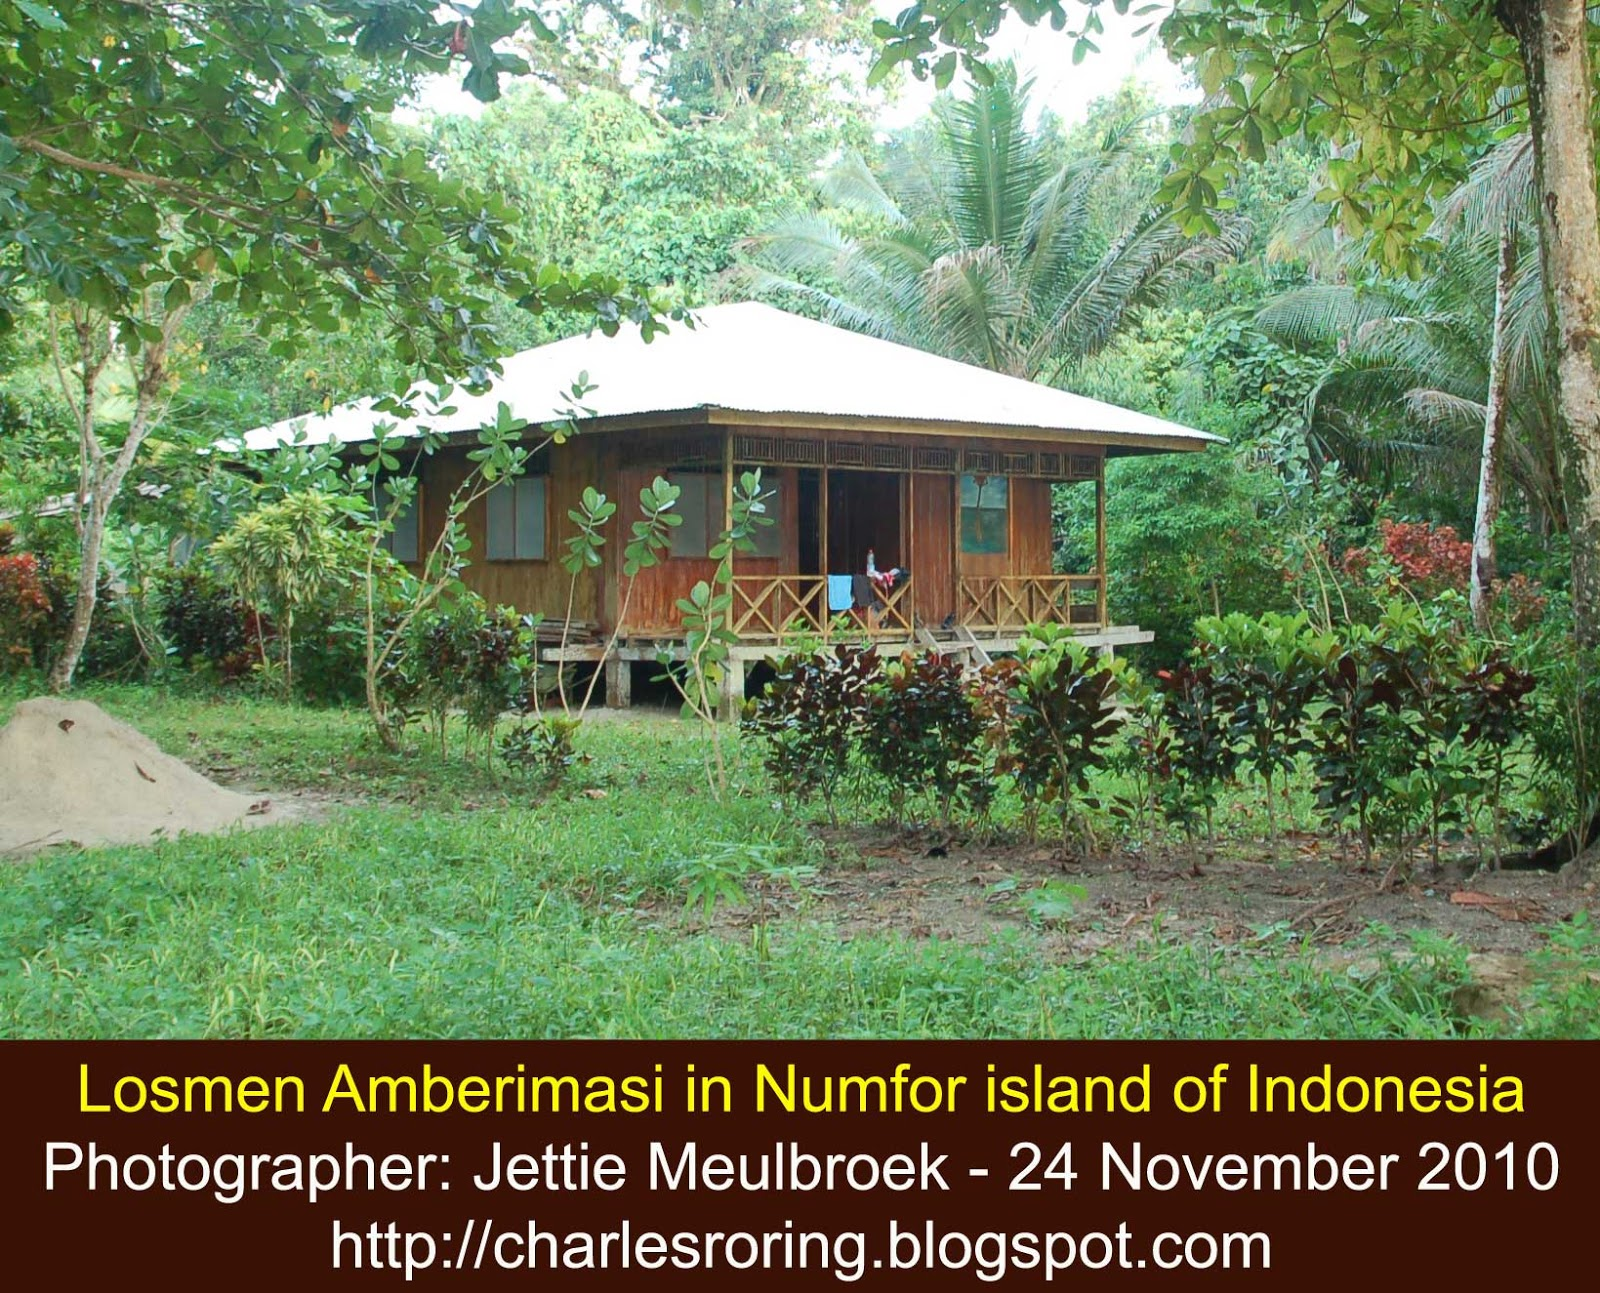 Raja Ampat Reef Wooden House Design Of Losmen Amberimasi